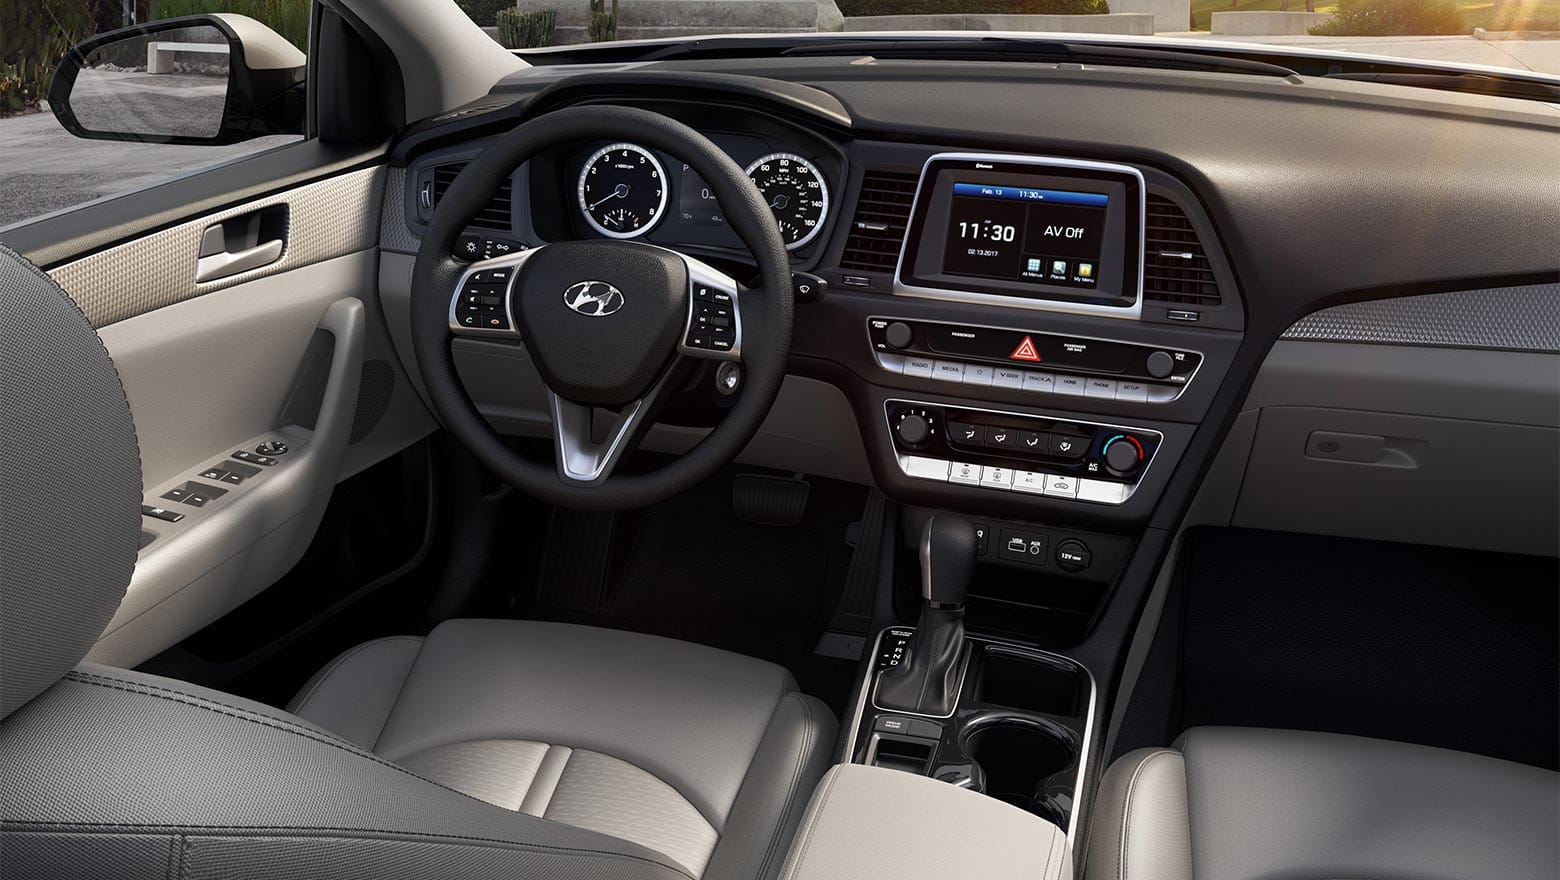 Hyundai Test Drive - Choice of one:  $ 40.00 Visa, Target, Amazon Gift Card - Participating Dealerships only